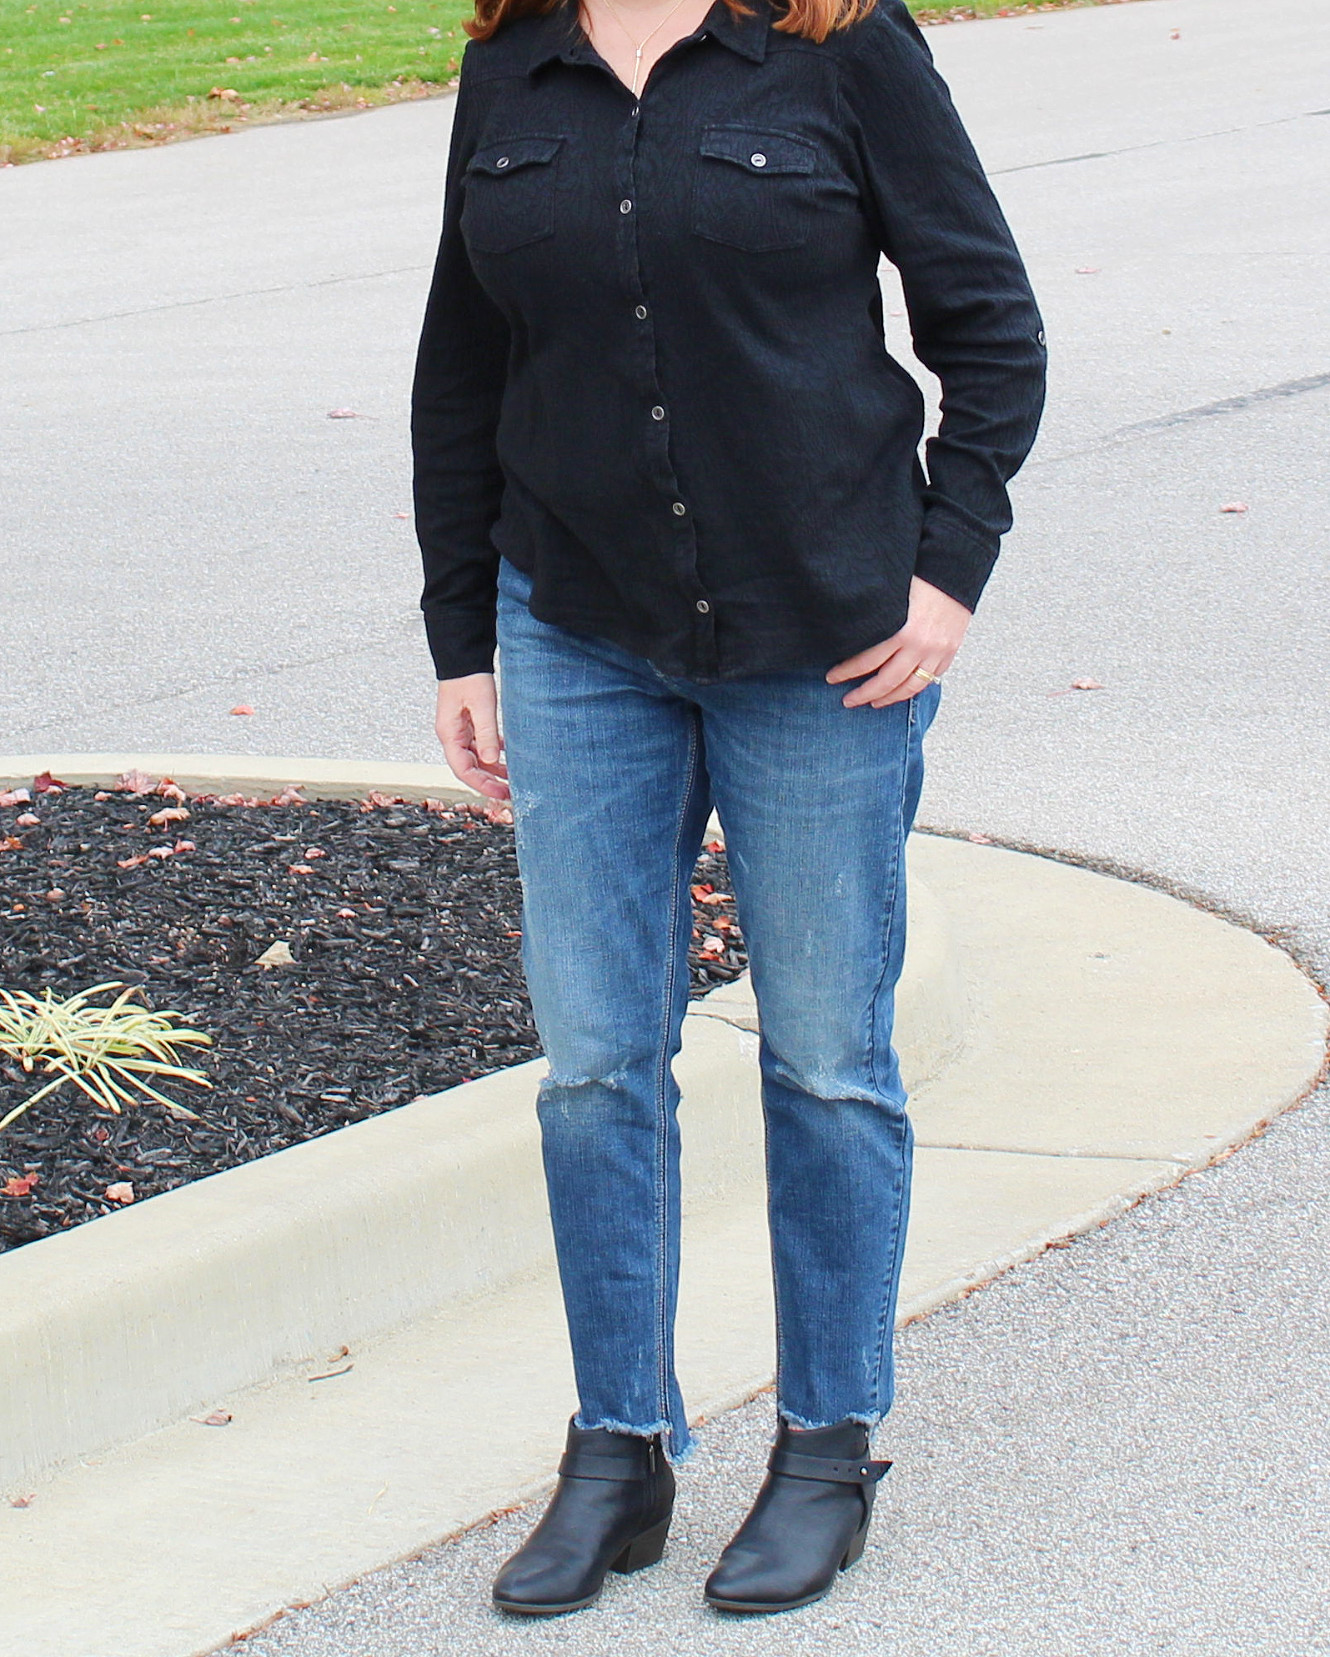 Raw Edge Jeans And Black Ankle Boots